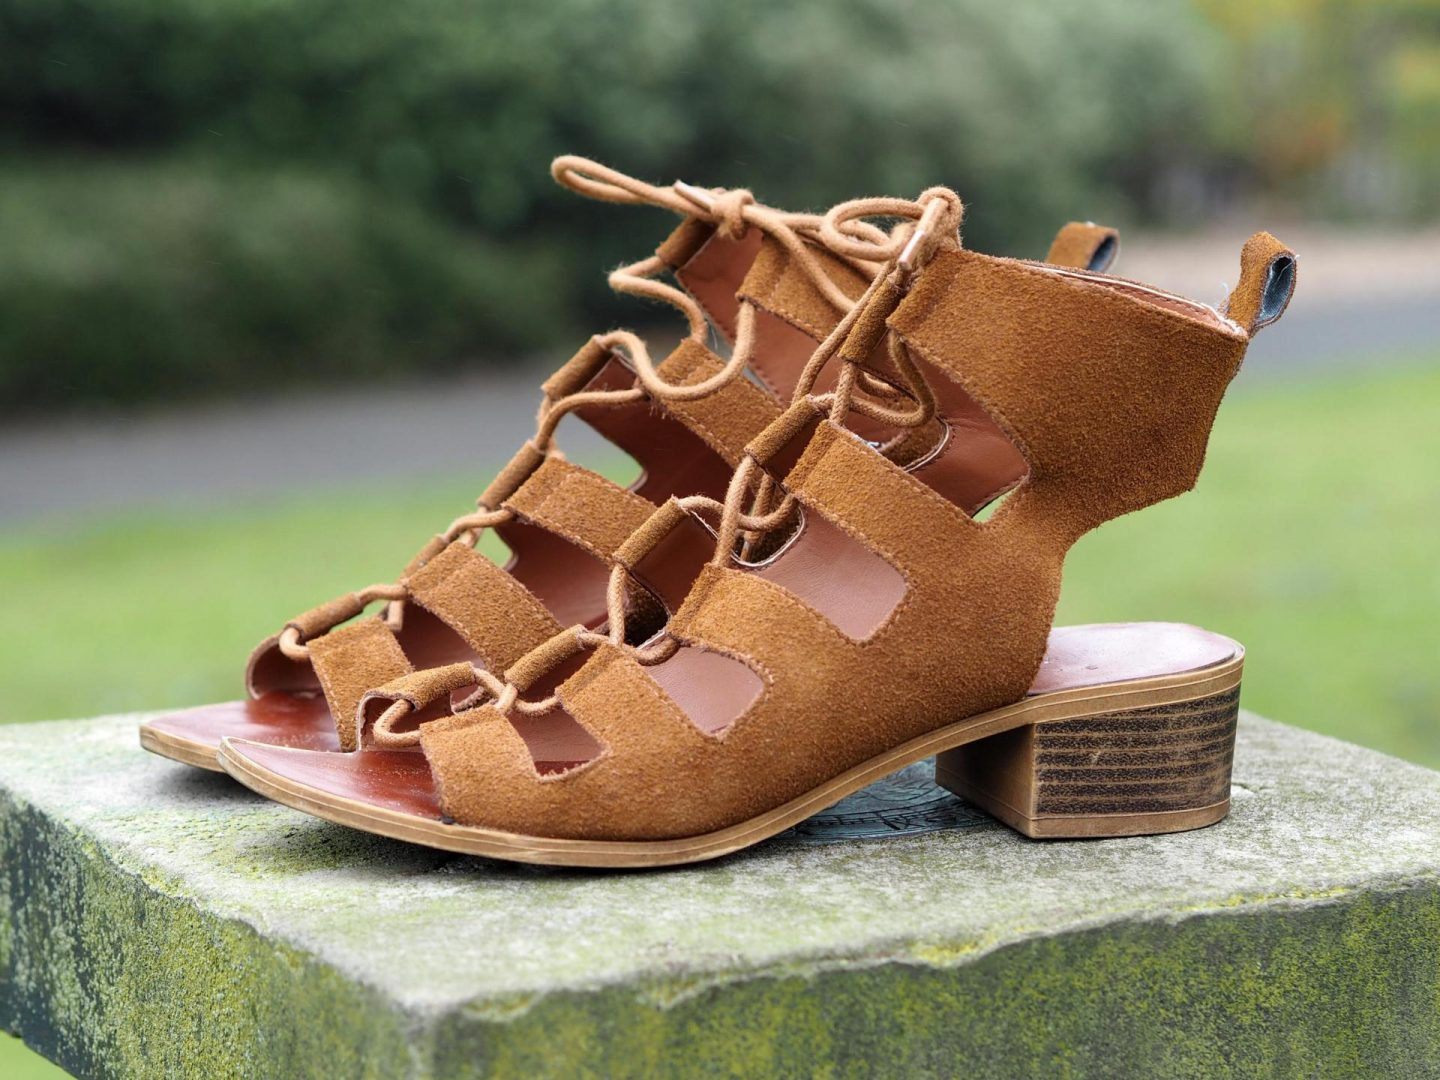 Seven Shoes in my Summer Shoedrobe - Rachel Nicole UK Style Blogger 4